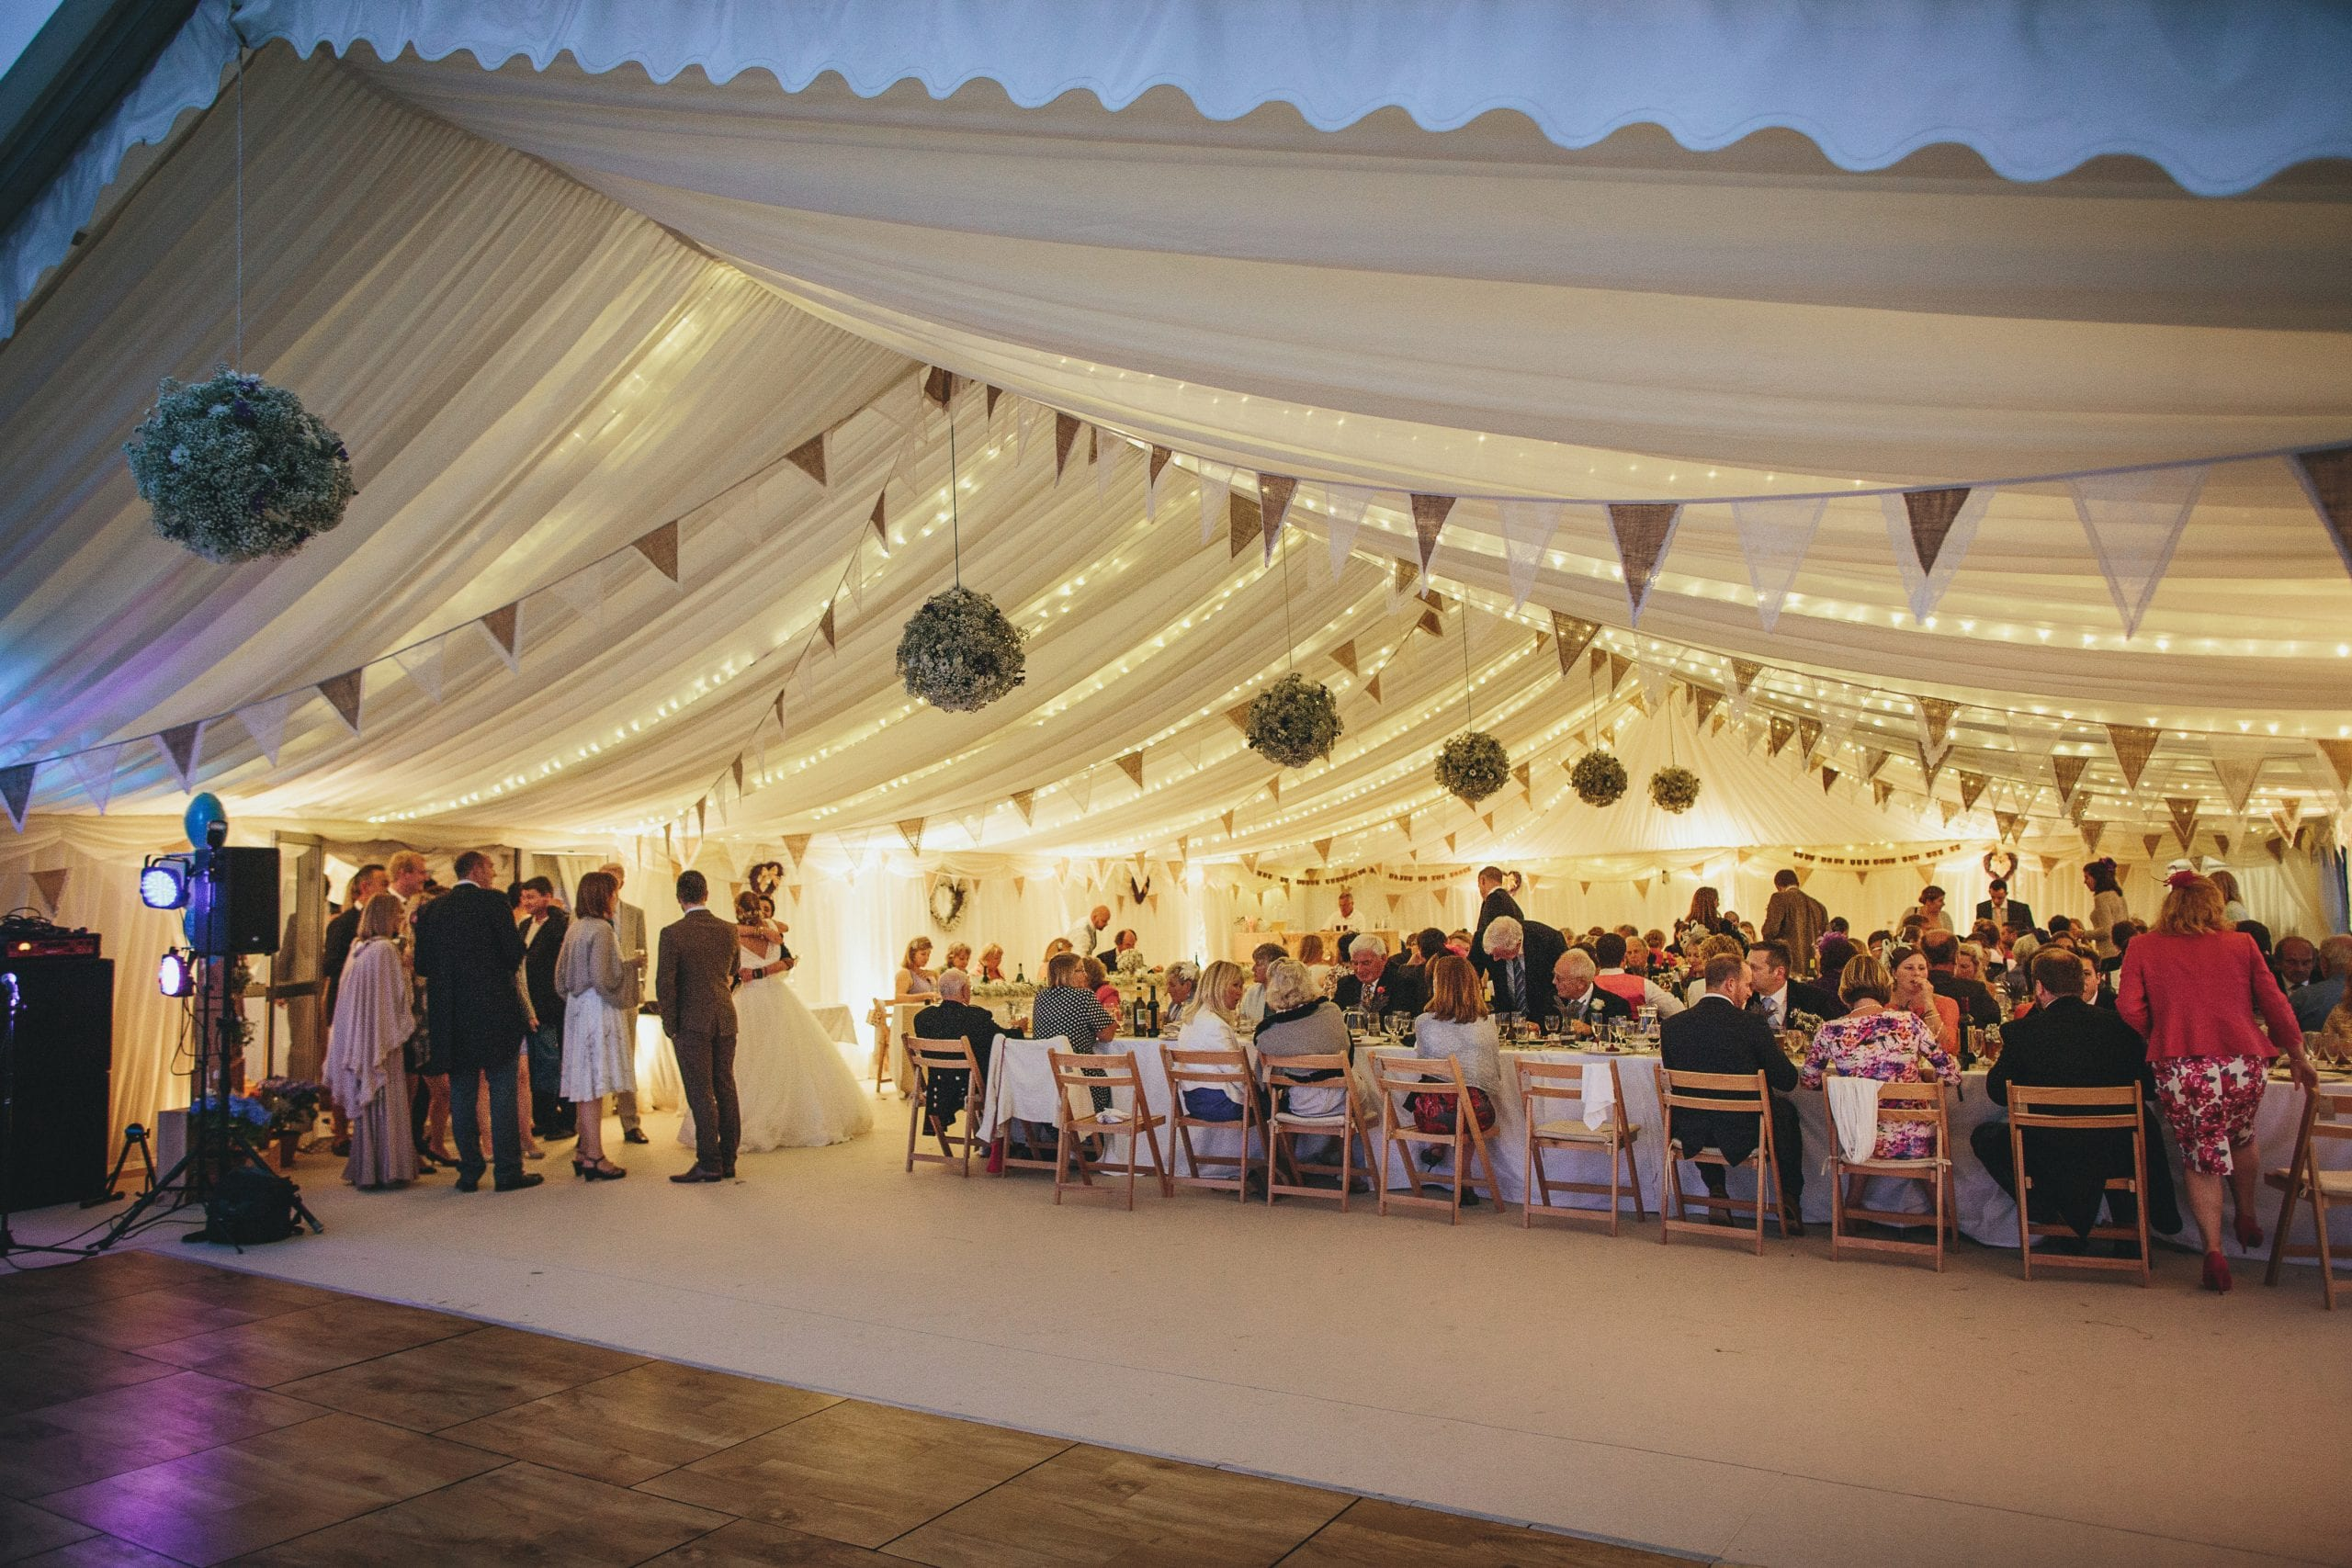 Devon wedding marquee hire